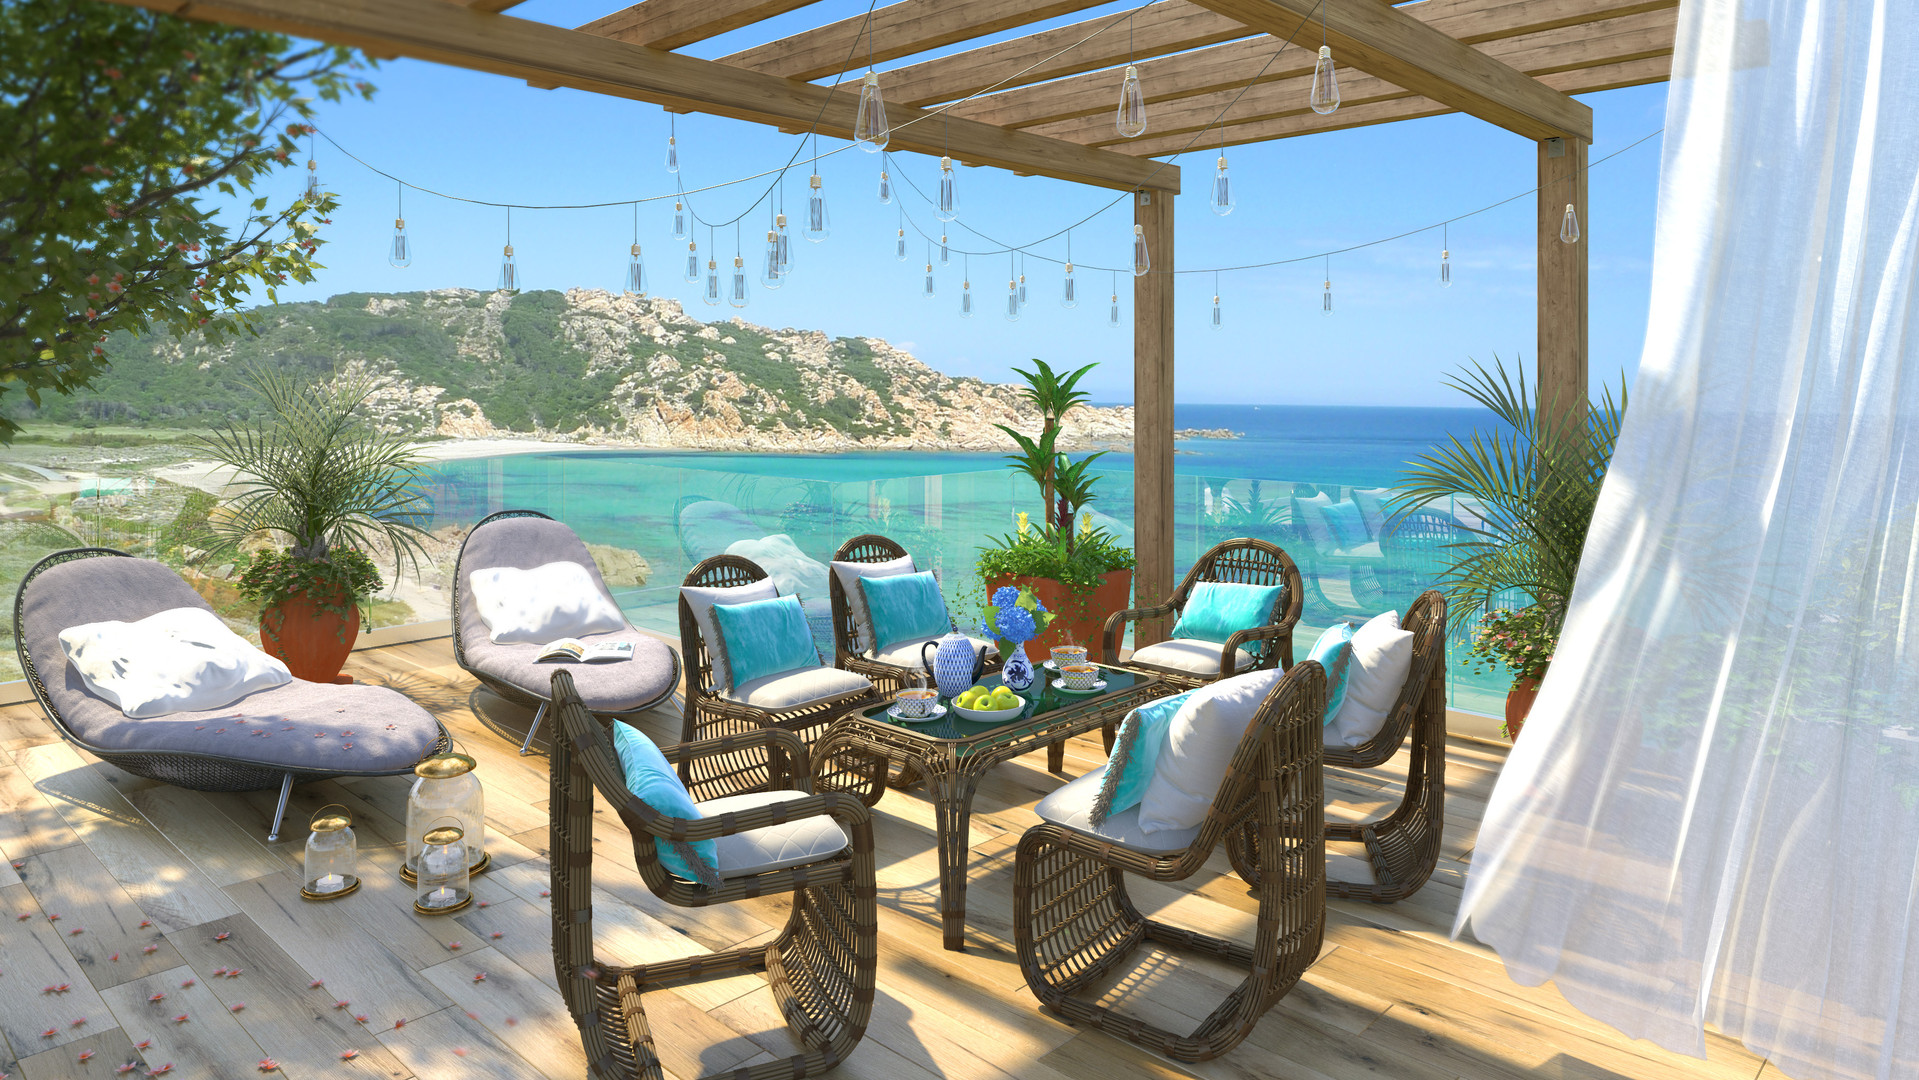 Patio, Mediterranean Sea